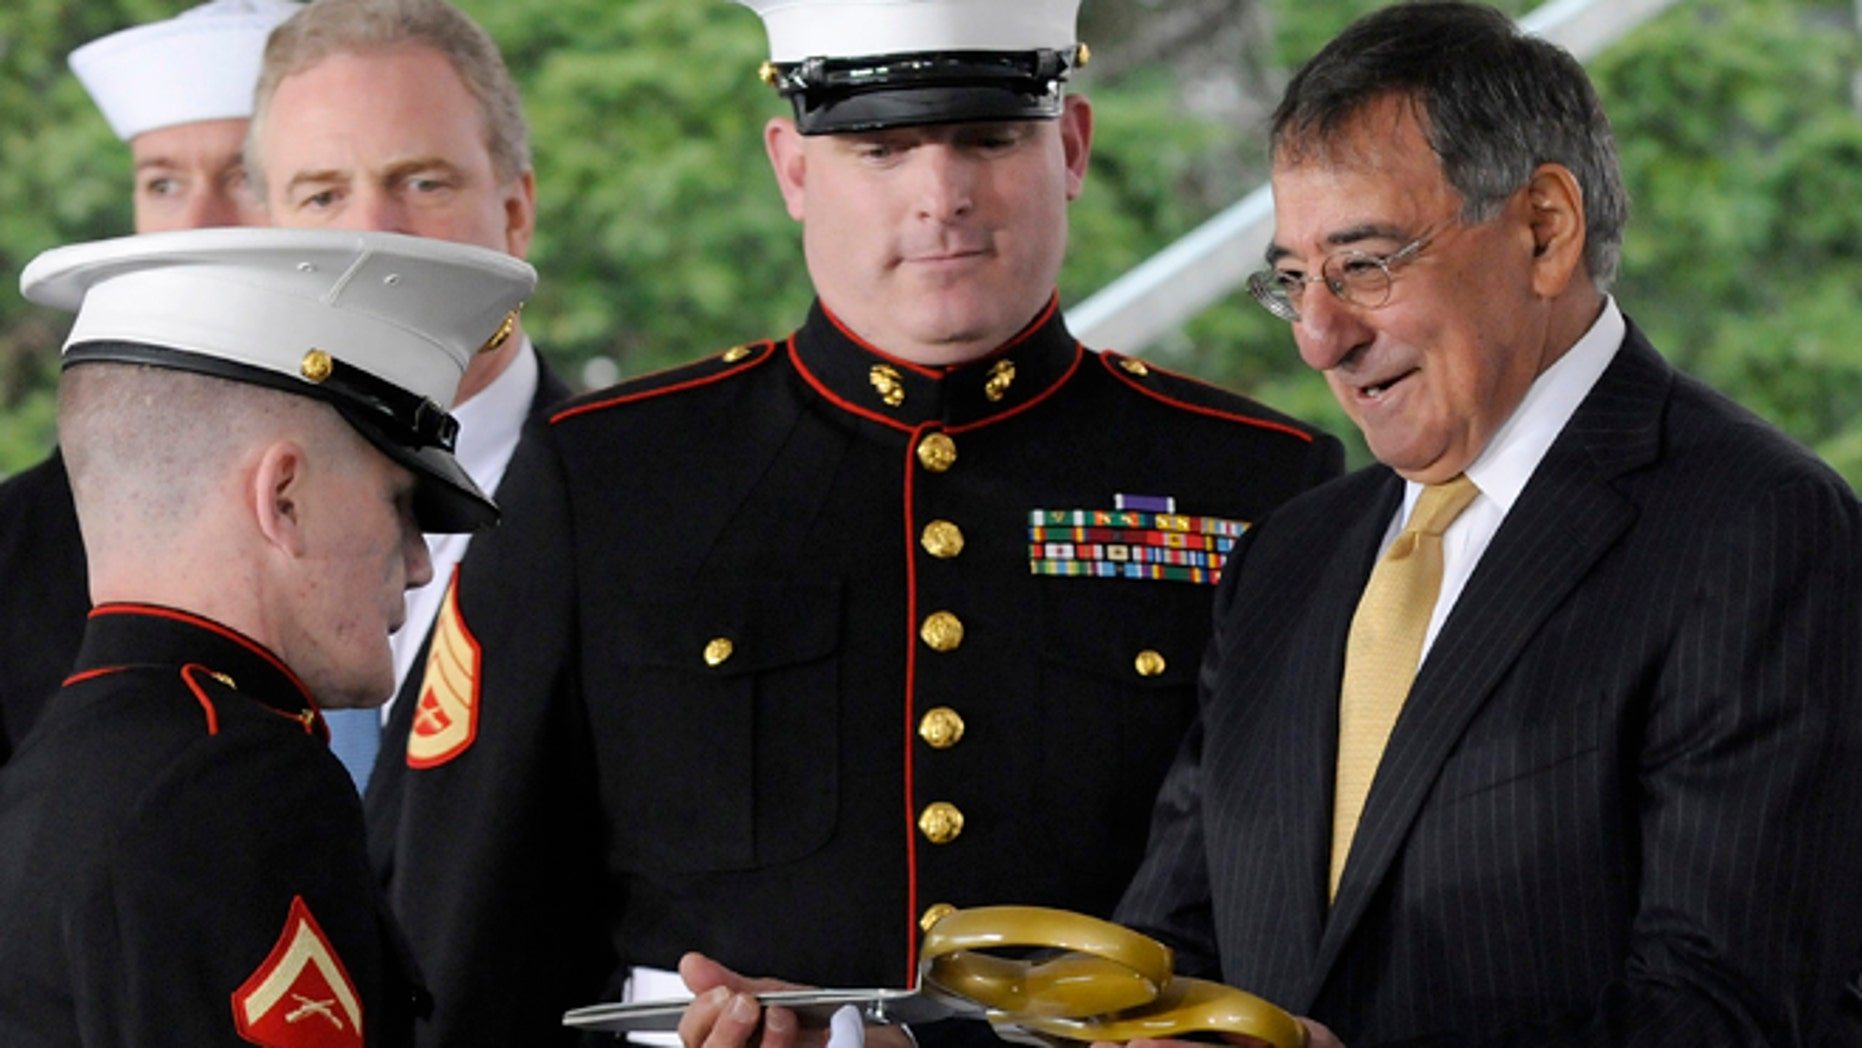 FILE: U.S. Defense Secretary Leon Panetta, right, handles the ceremonial scissors from U.S Marine Corps Lance Corporal Kyle Carpenter to cut the ribbon at the dedication ceremony at the Walter Reed National Military Medical Center in Bethesda.